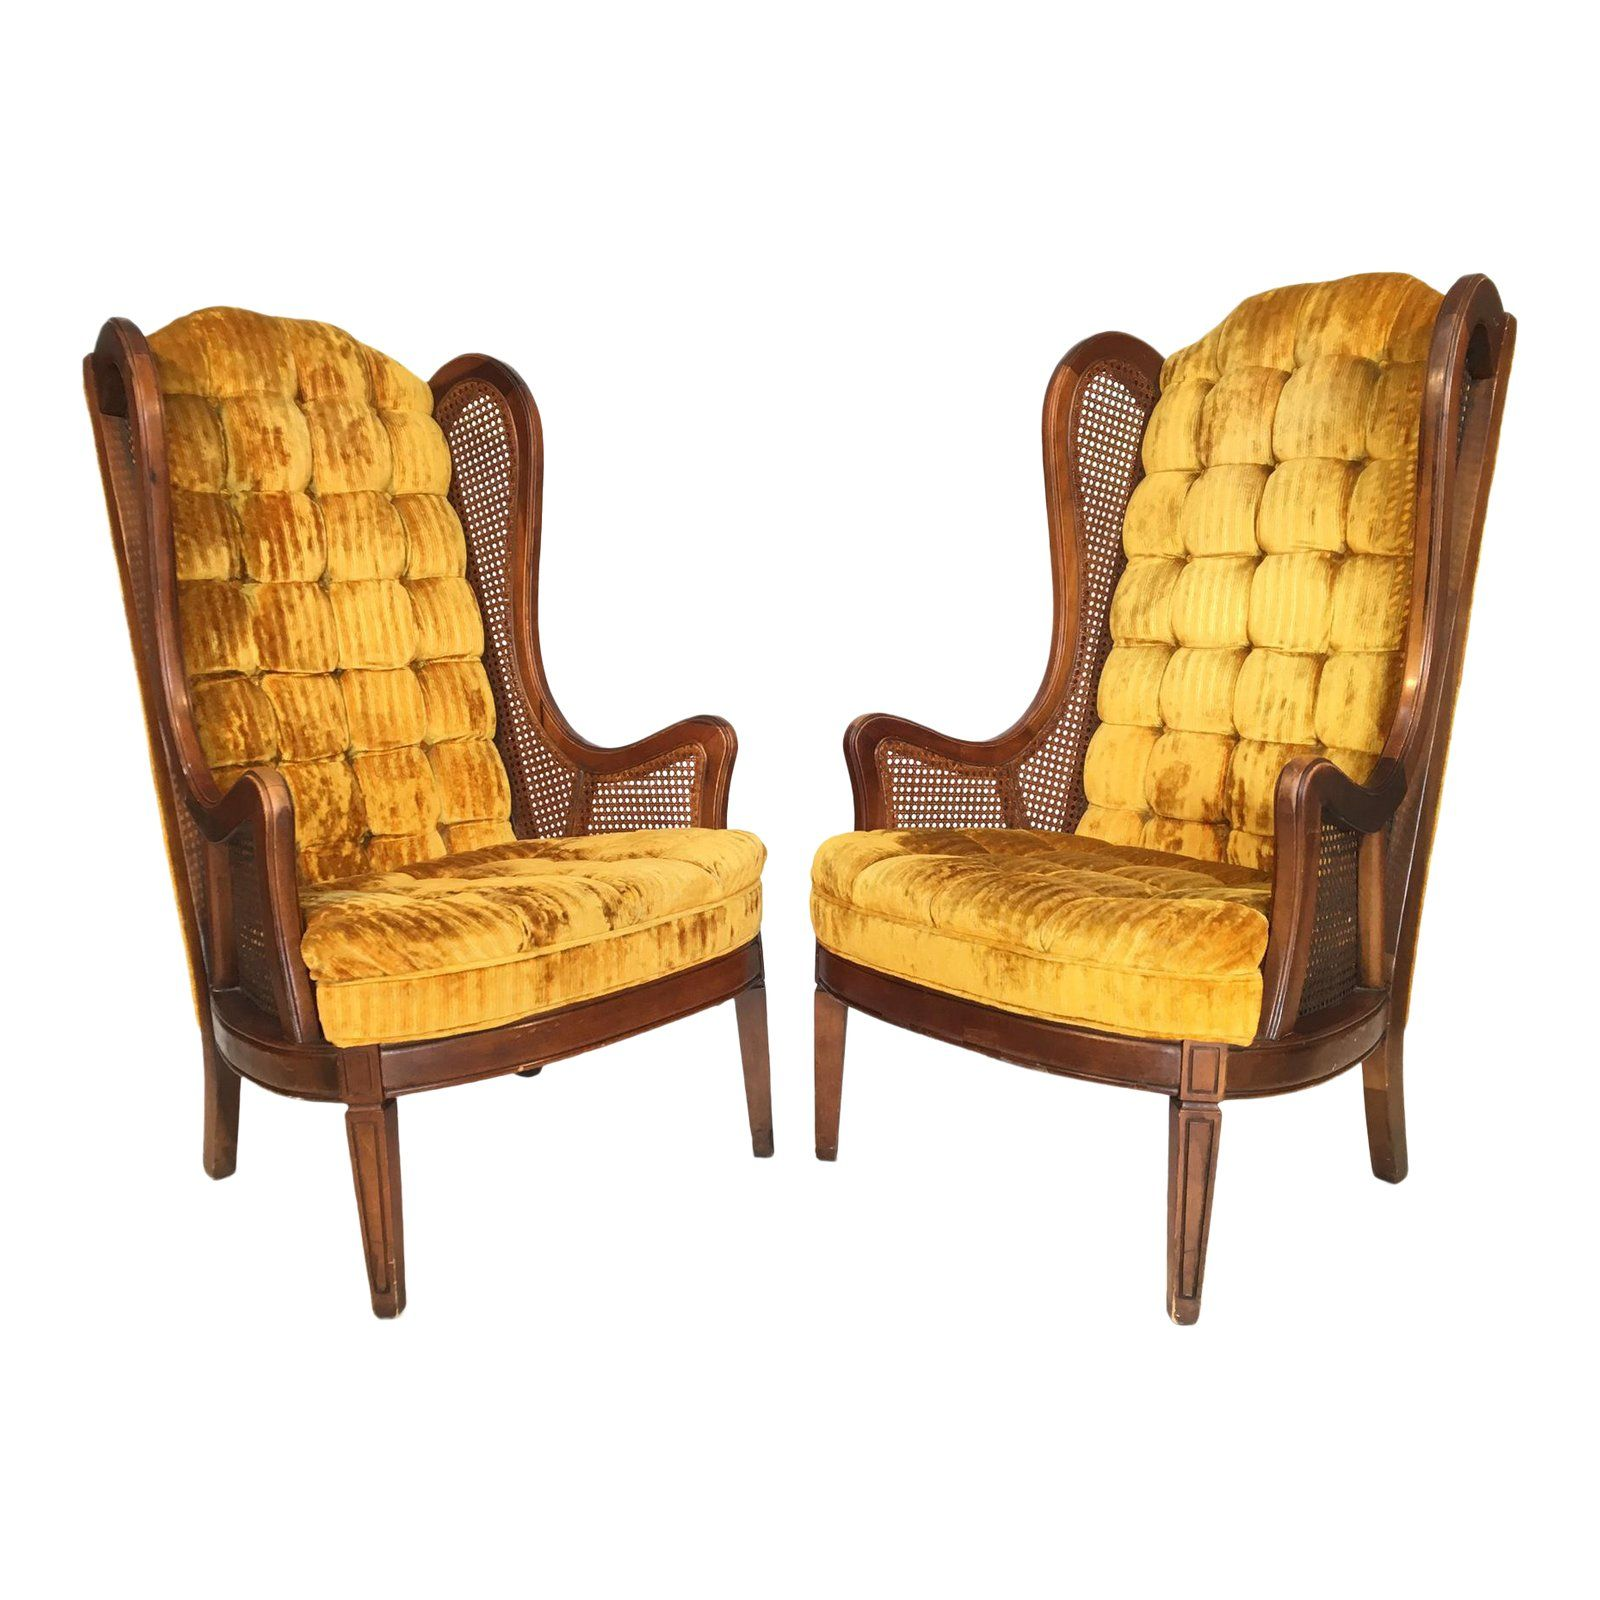 Tufted Velvet Cane Wingback Chairs by Lewittes Wingback